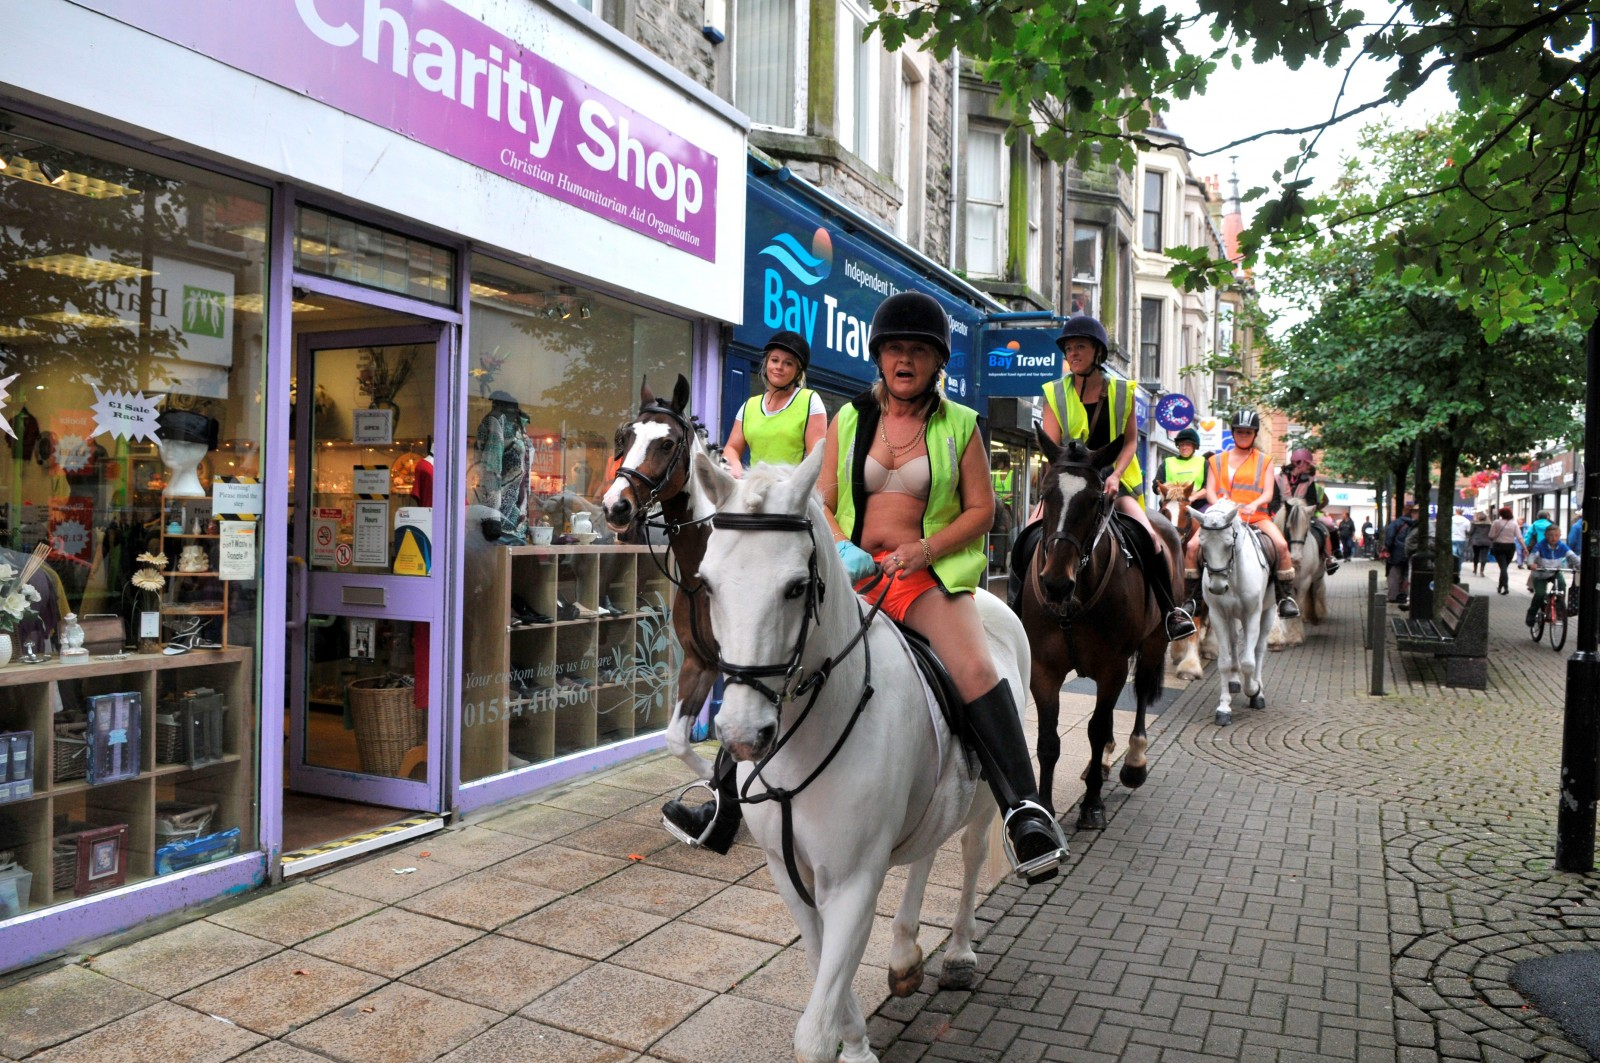 Discover why these protesters stripped off and rode down local high street